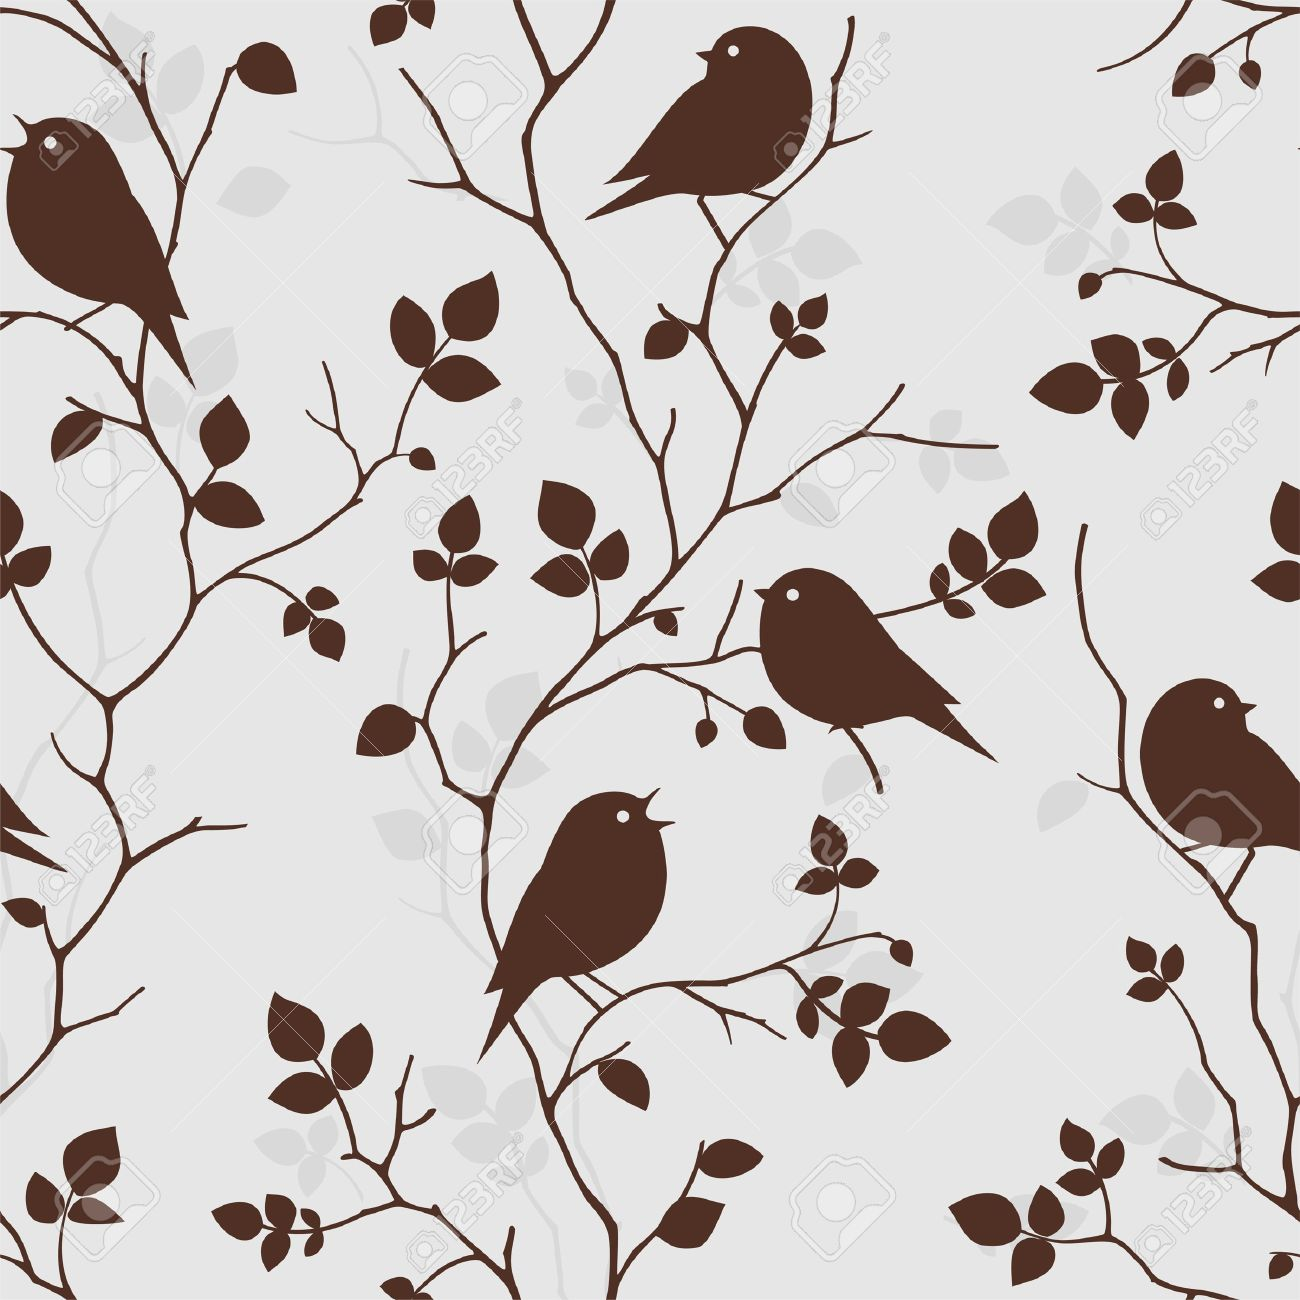 Wallpaper With Birds wallpaper with birds seamless pattern royalty free cliparts